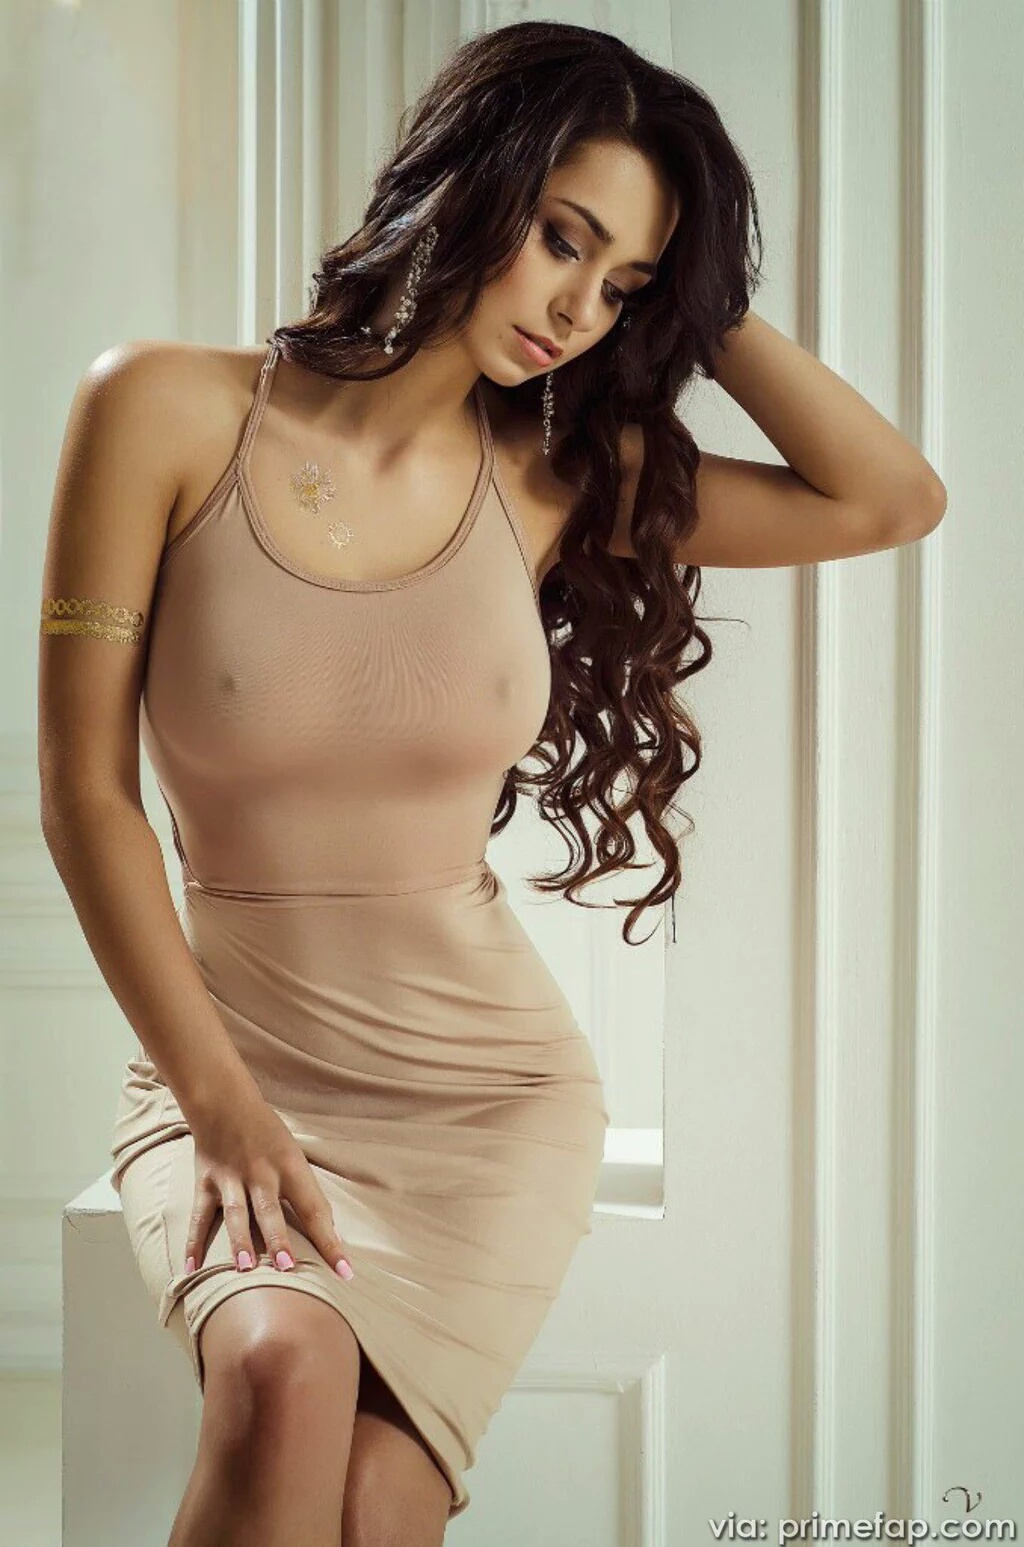 Sexy girl taking her clothes off stock photos